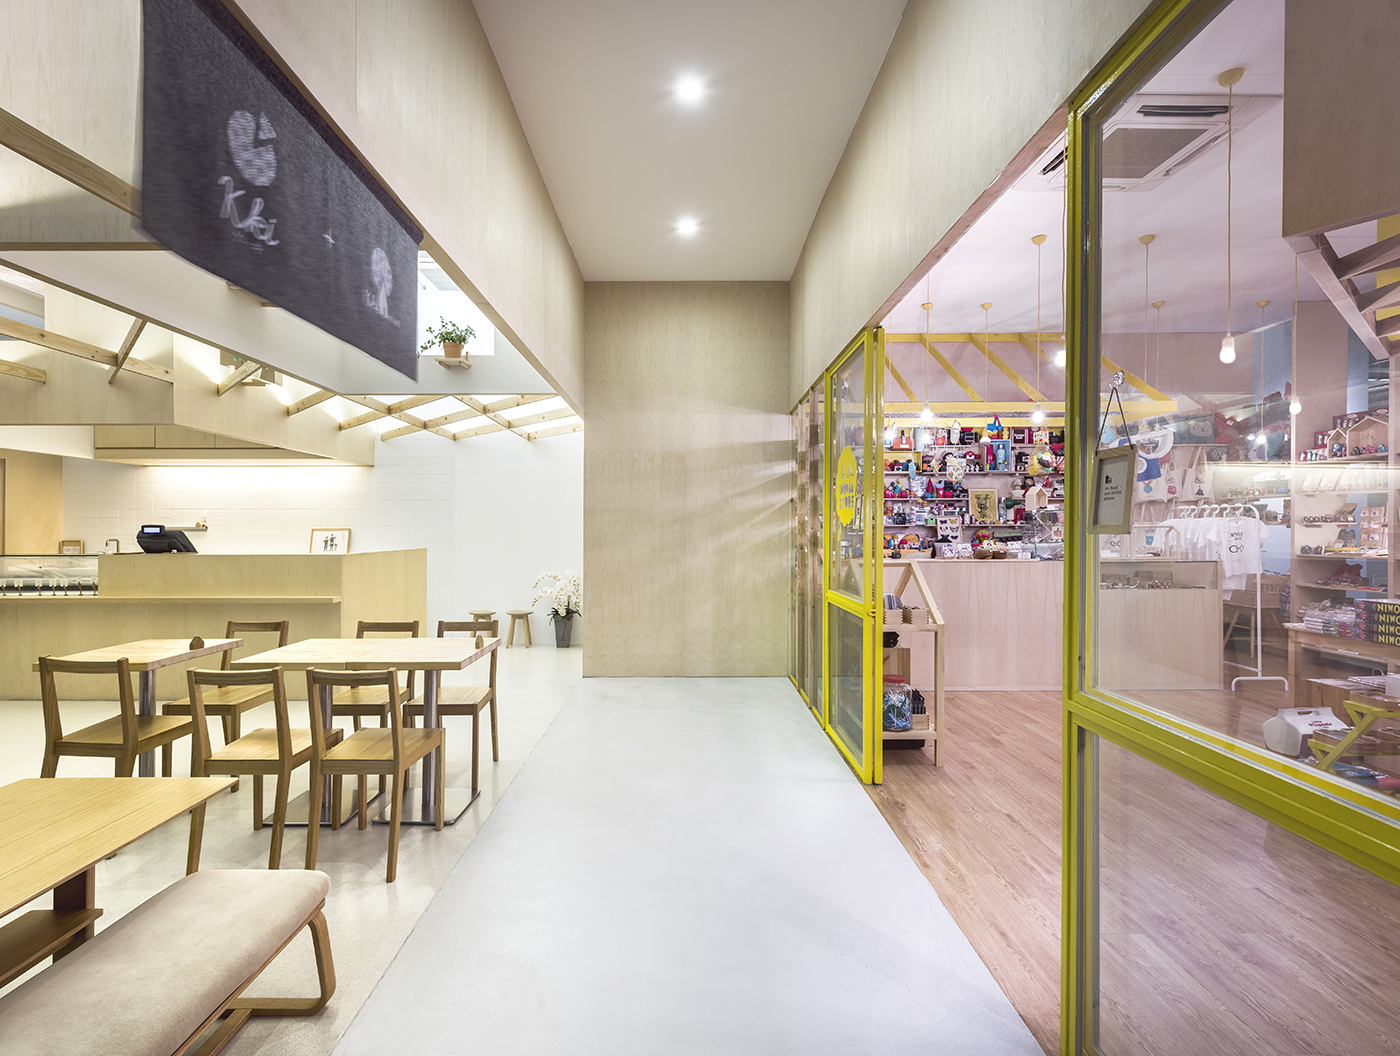 In a happily shared space at the School of the Arts (SOTA) building in Singapore, food-meets-art with a PRODUCE designed retail mash-up of Kki Sweets and Little Dröm Store.